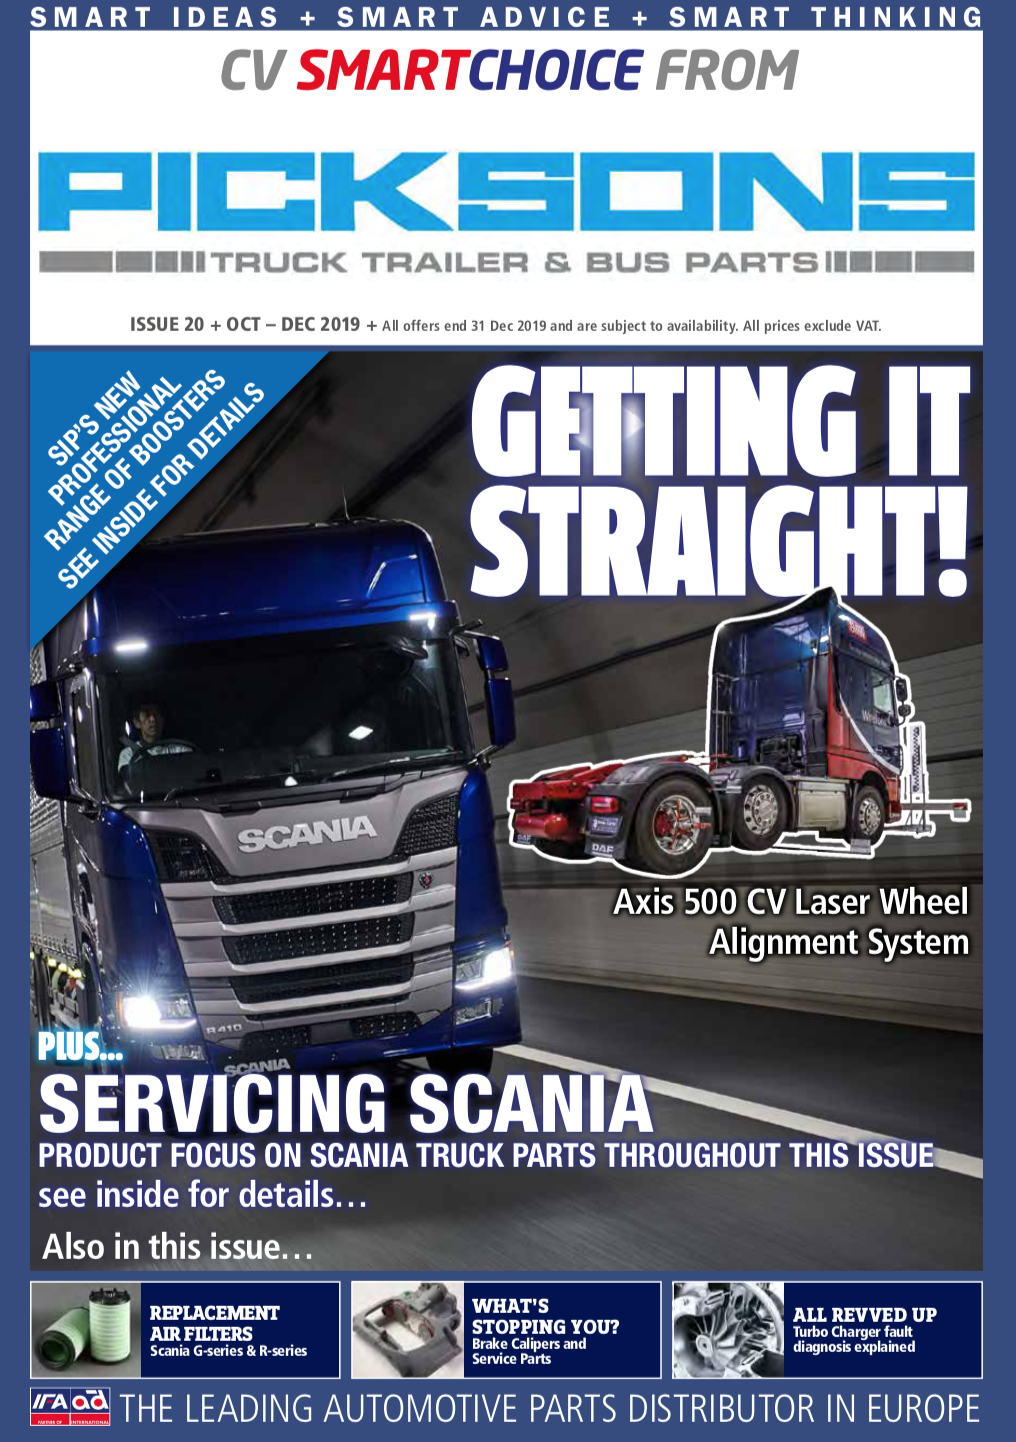 Picksons CV Smart Choice - Issue 20